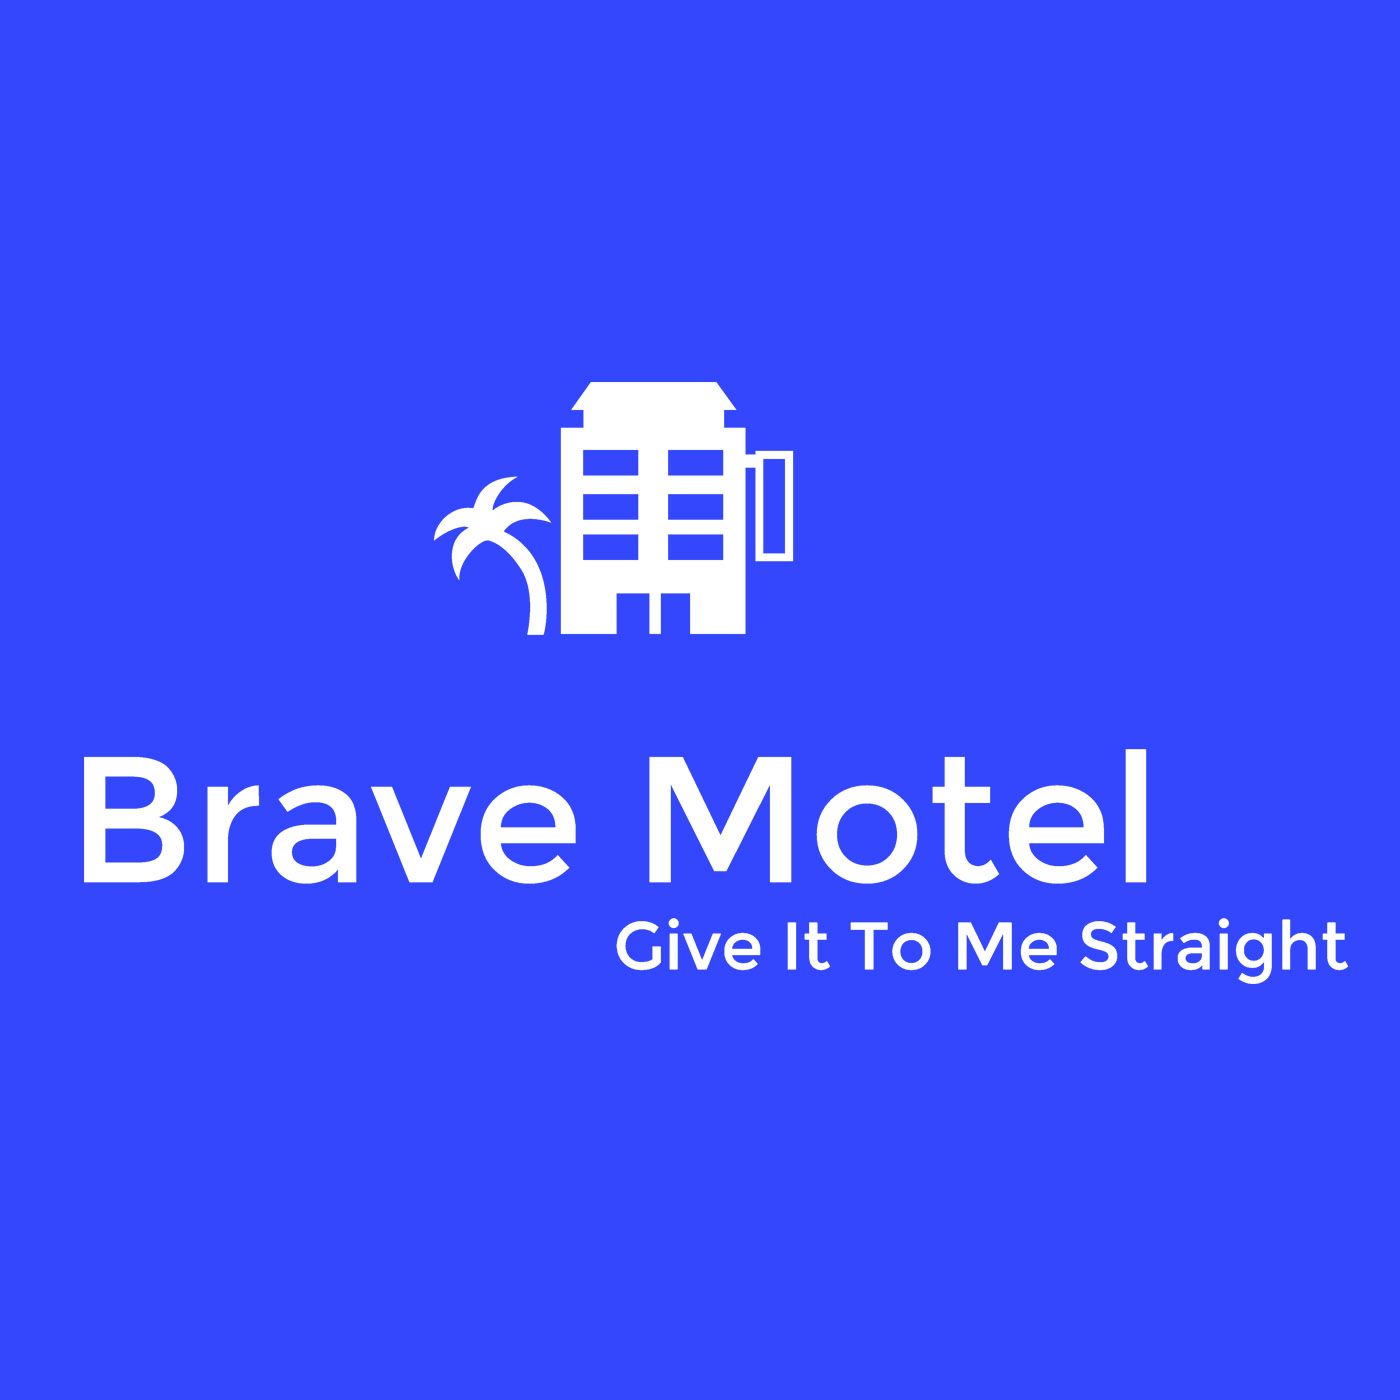 Give It To Me Straight - Brave Motel